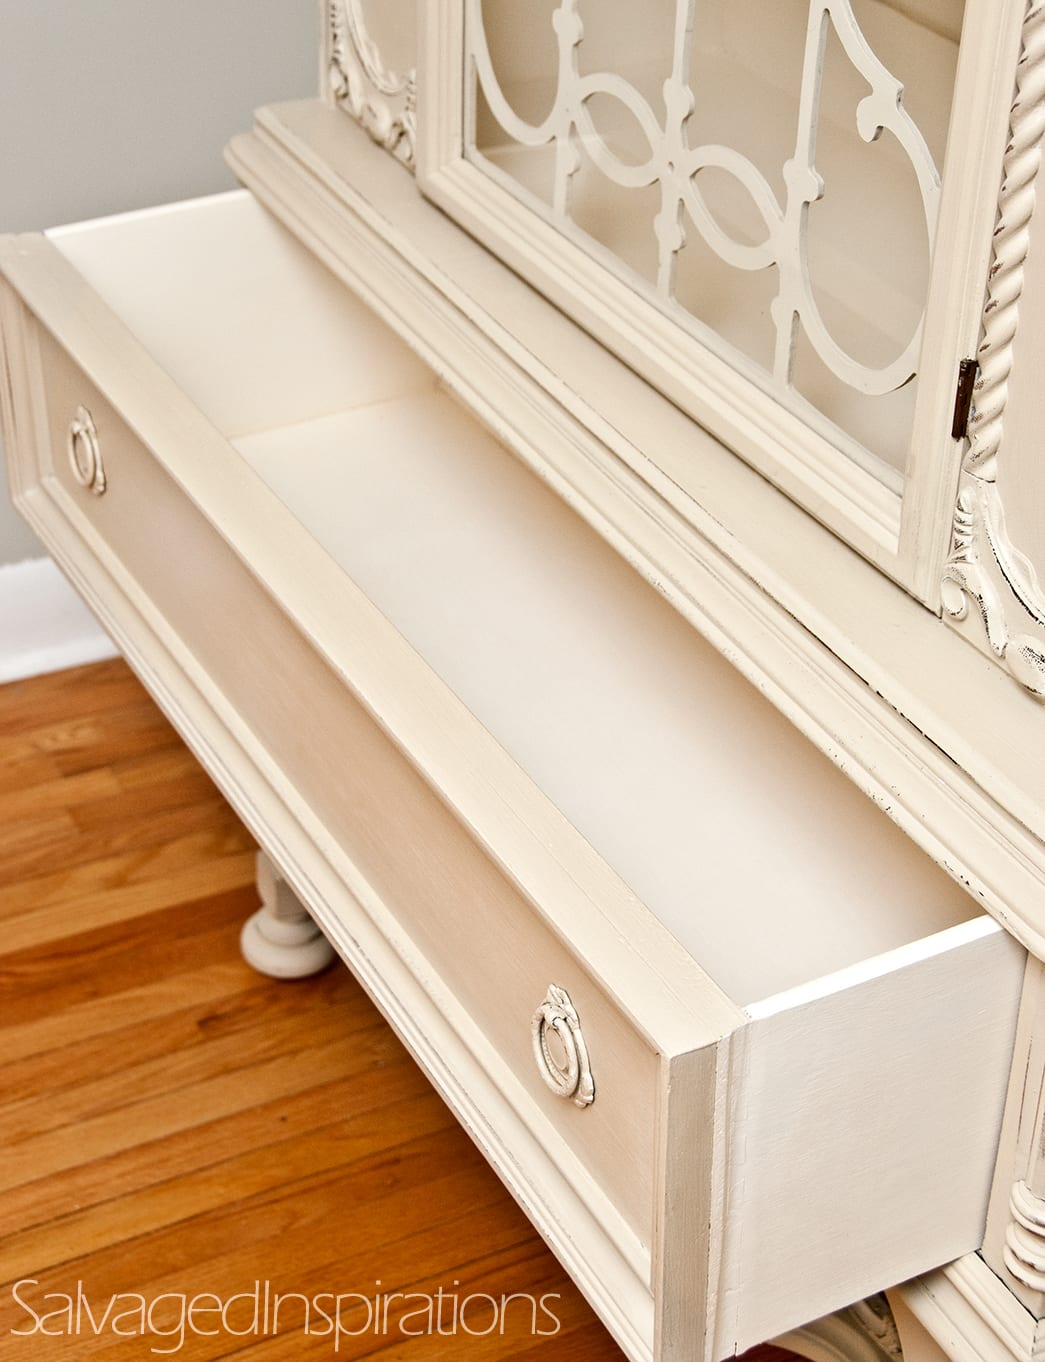 To Paint or Not To Paint the Inside of Drawers